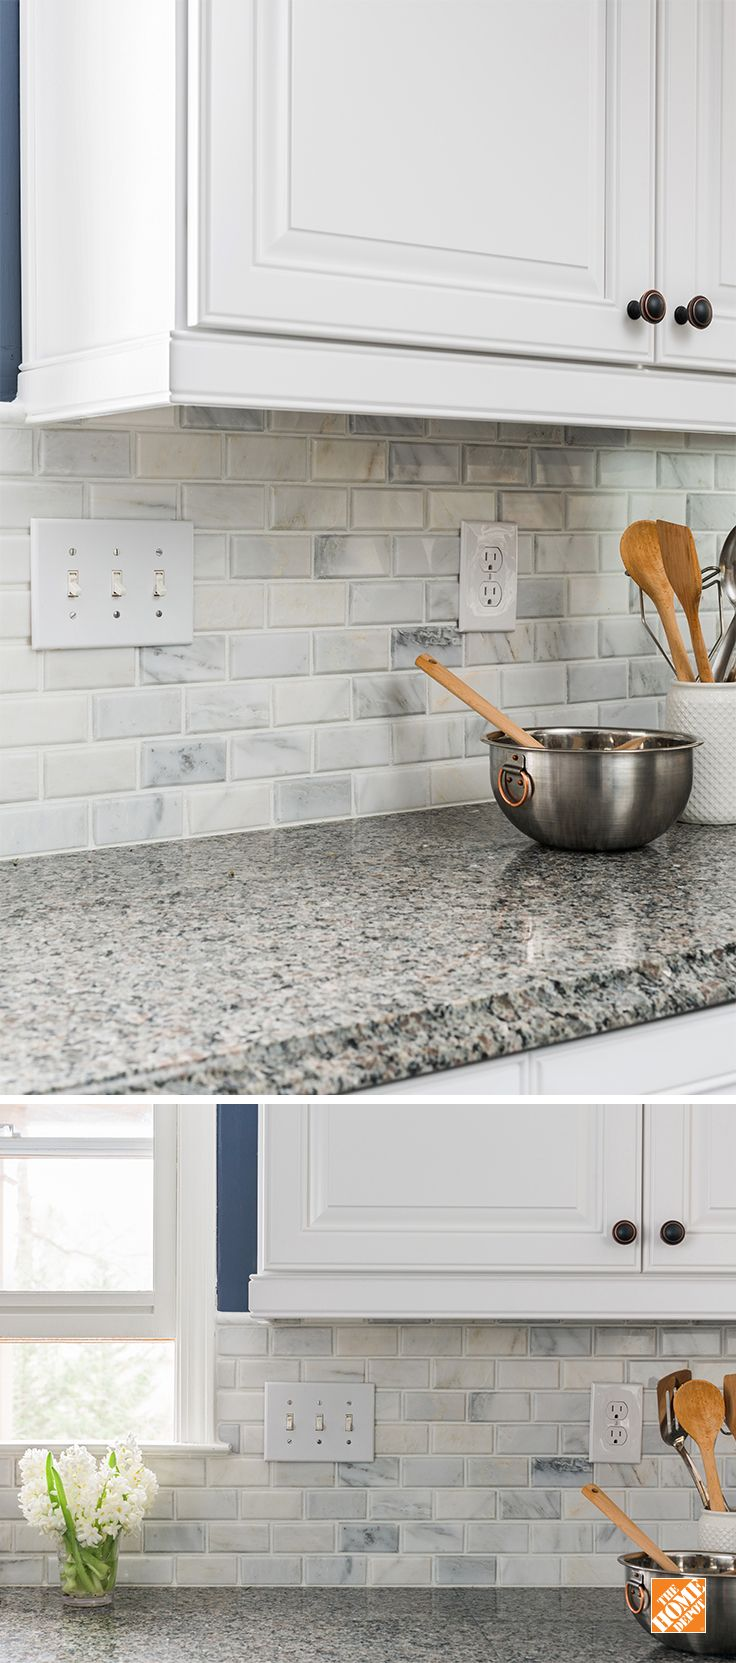 Elegant Let The Home Depot Install Your Kitchen Backsplash For You. Itu0027s Quick, Easy ,